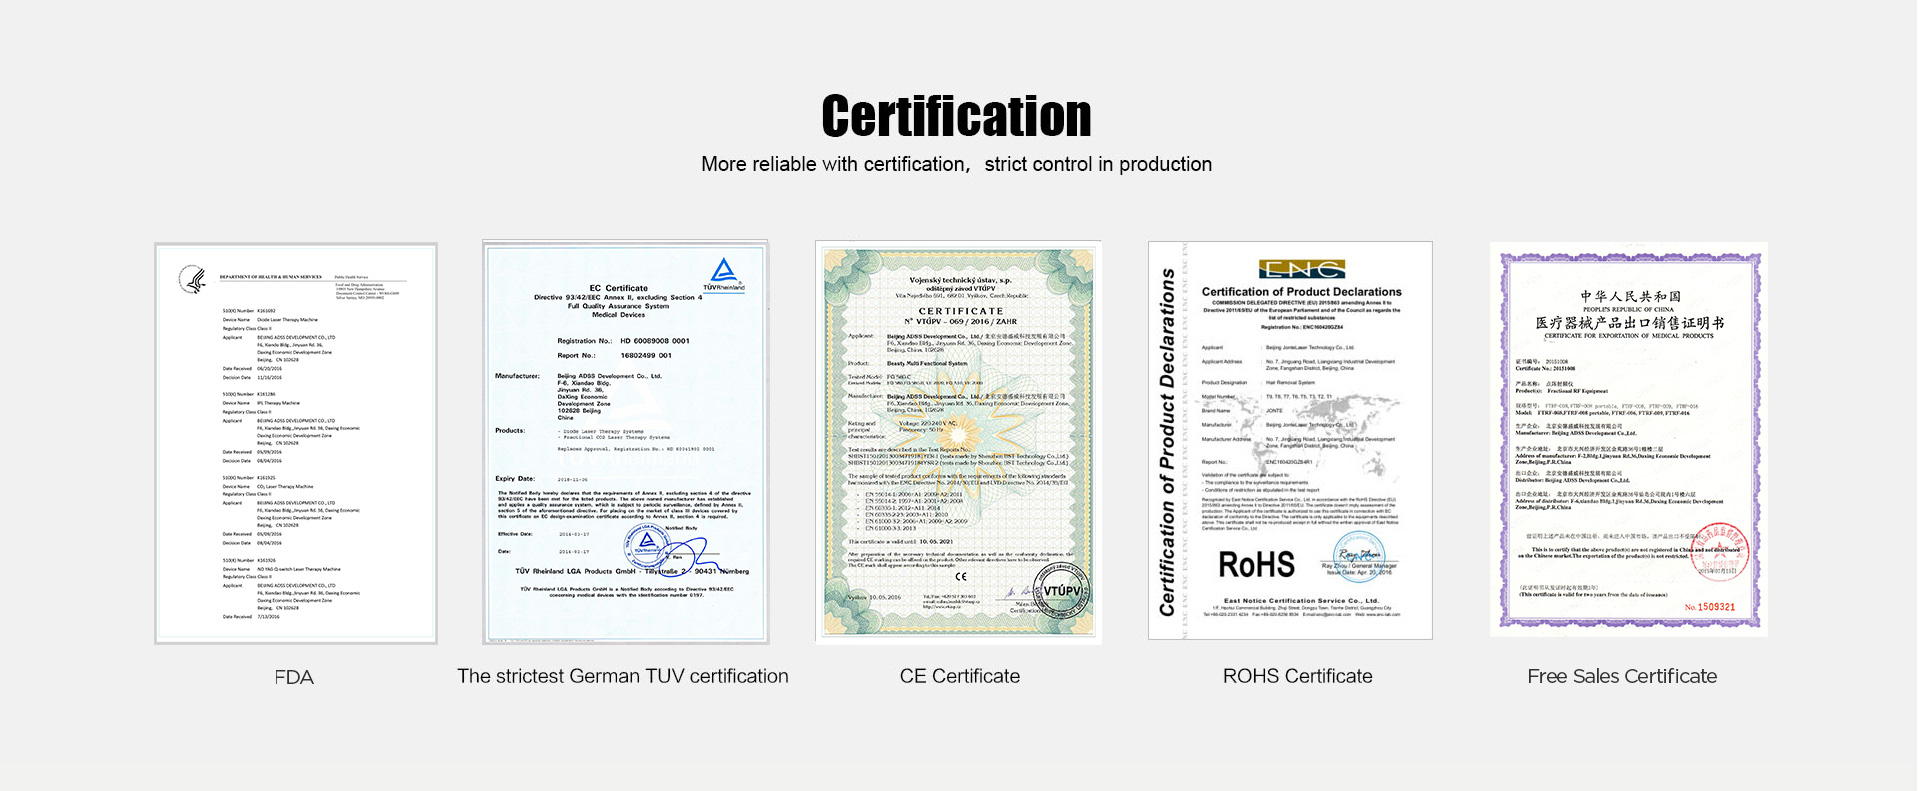 Medical laser beauty equipment product certificate